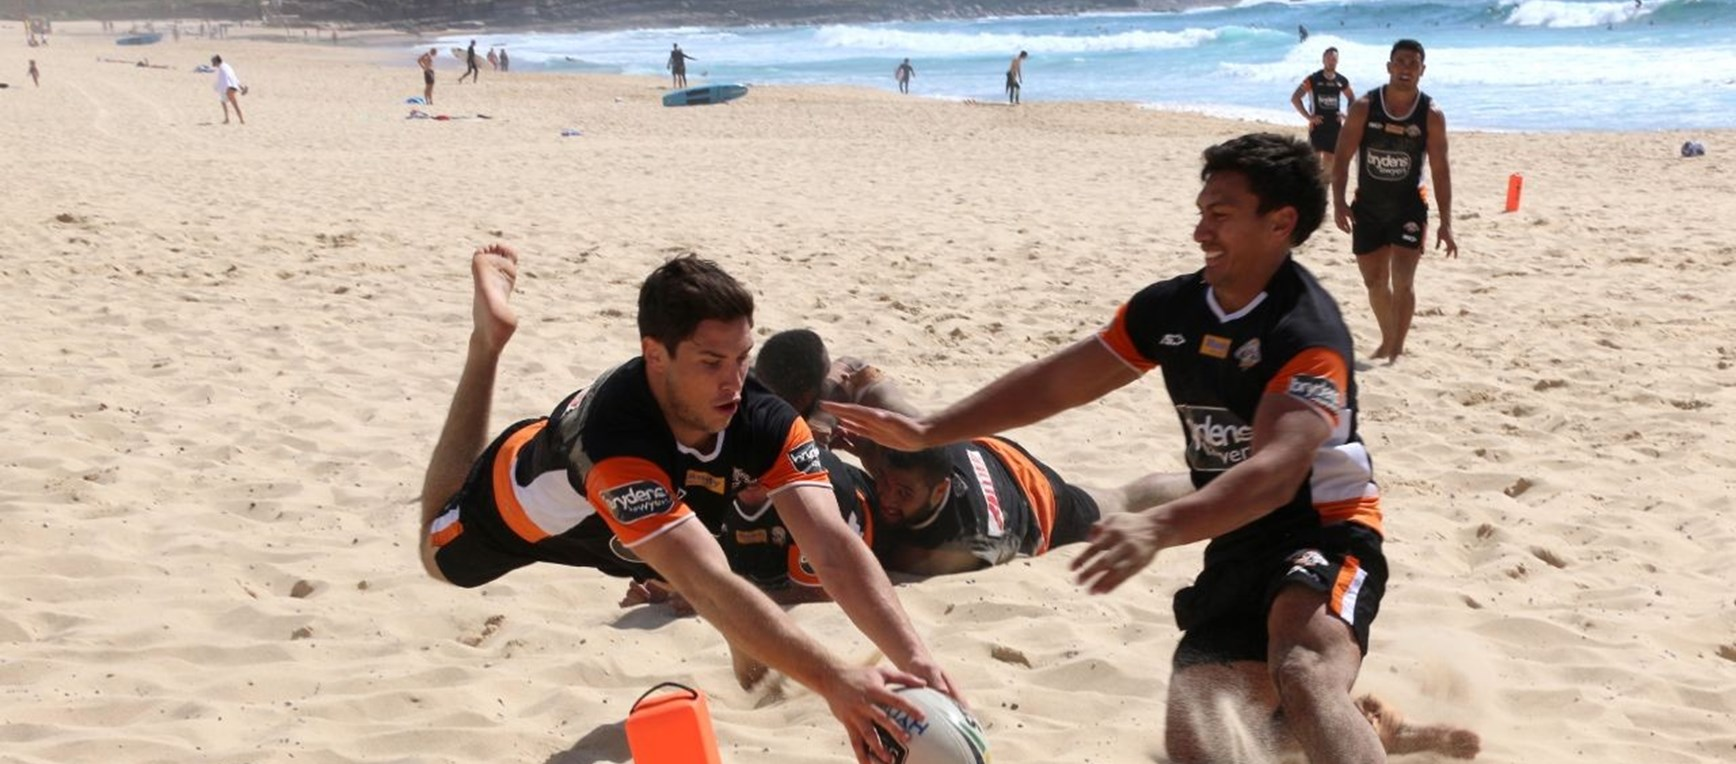 Gallery: Saturday beach session at Maroubra